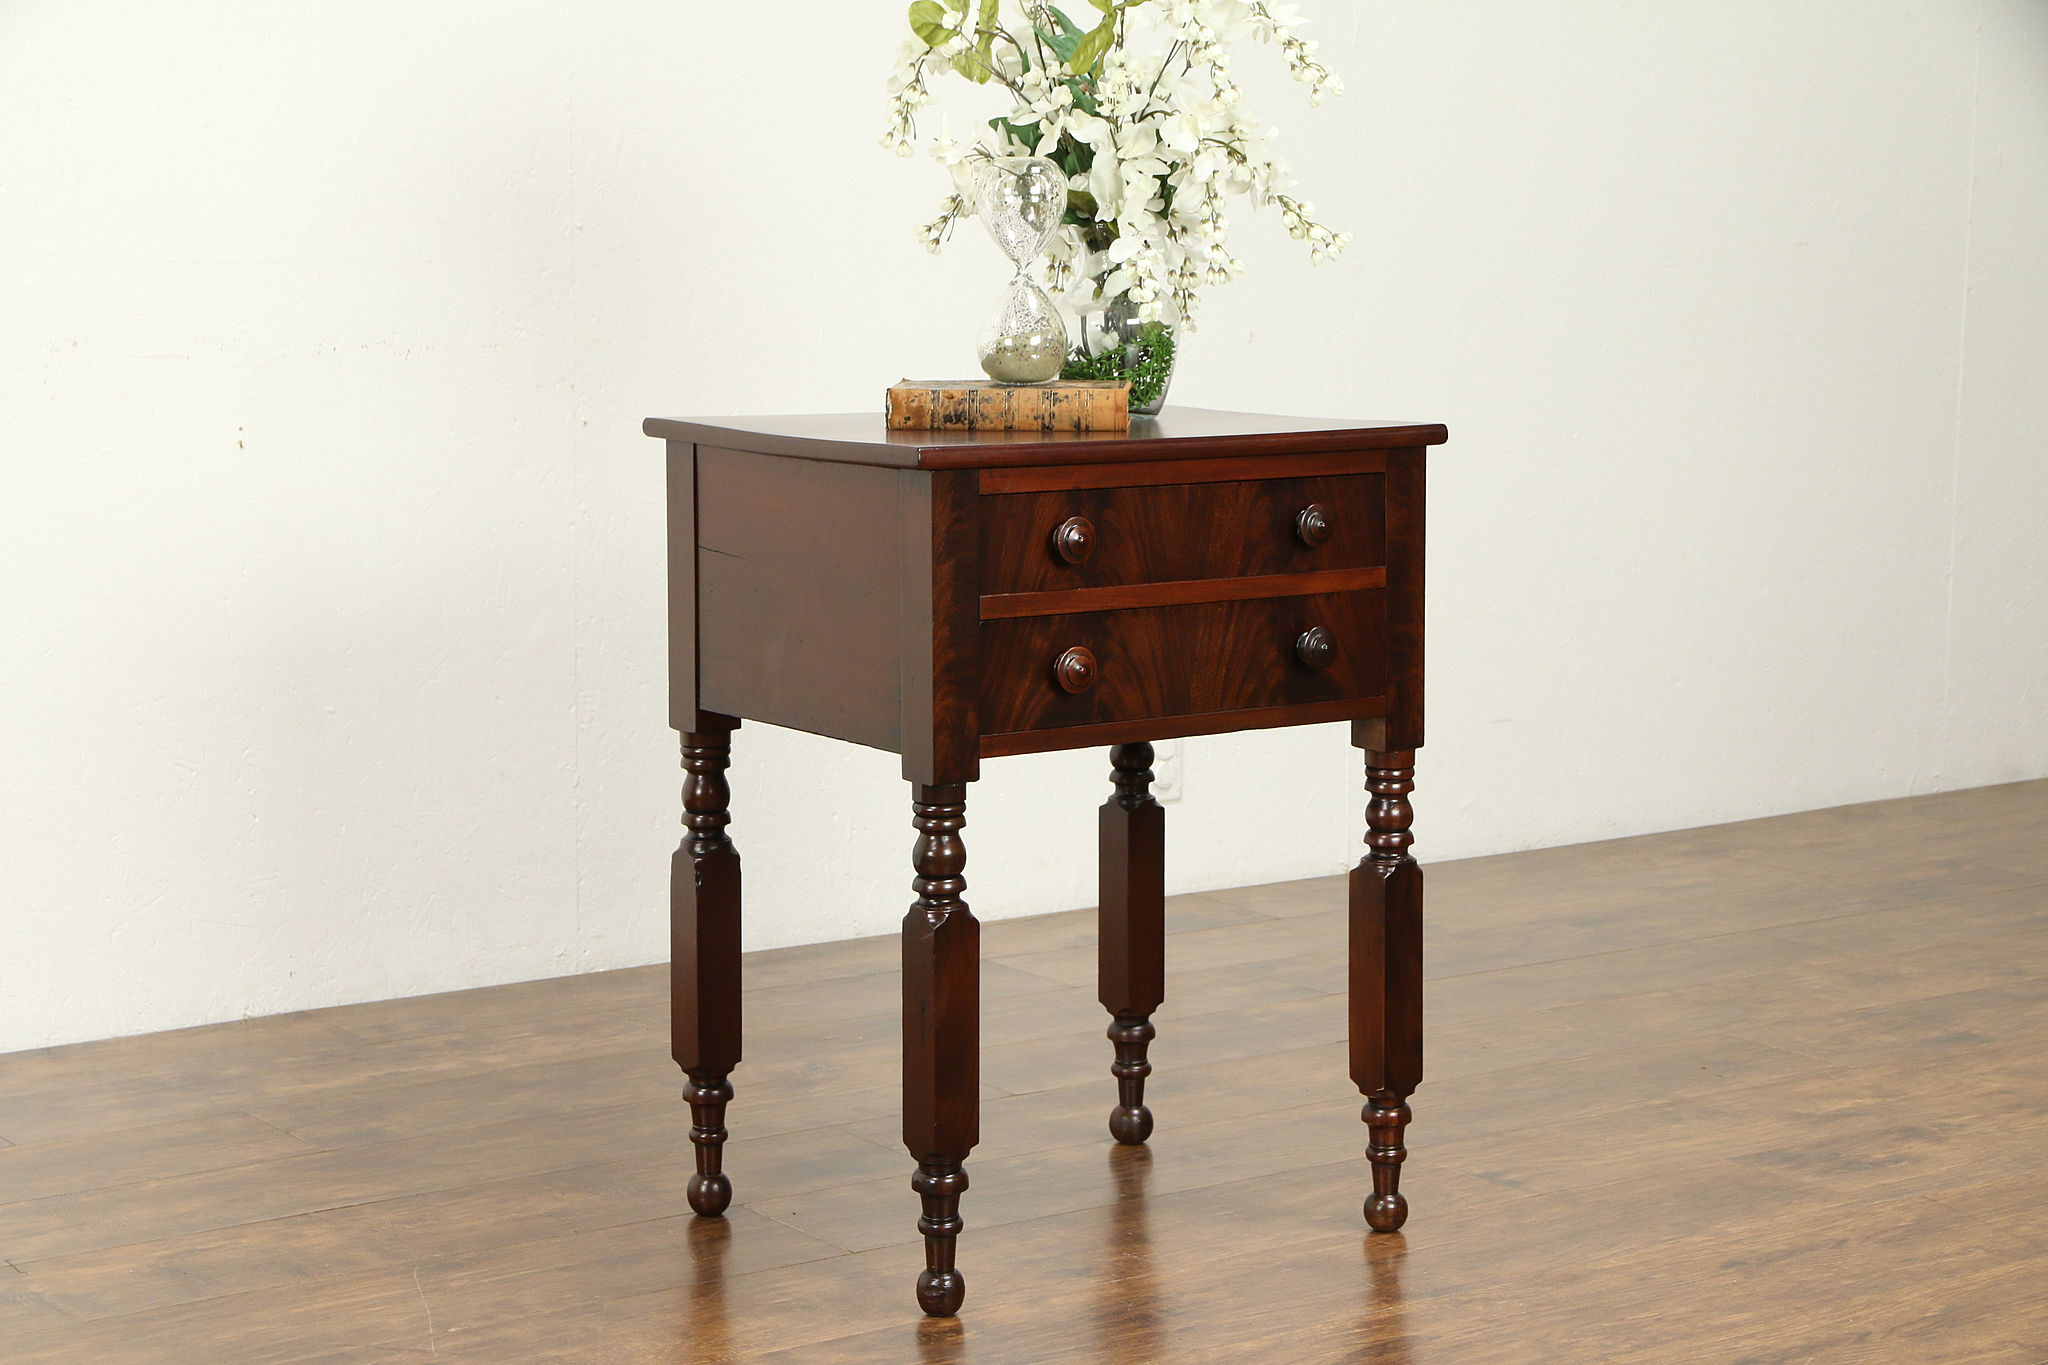 Sold Victorian Cherry Mahogany Antique Nightstand Lamp Or End Table 32176 Harp Gallery Antiques Furniture